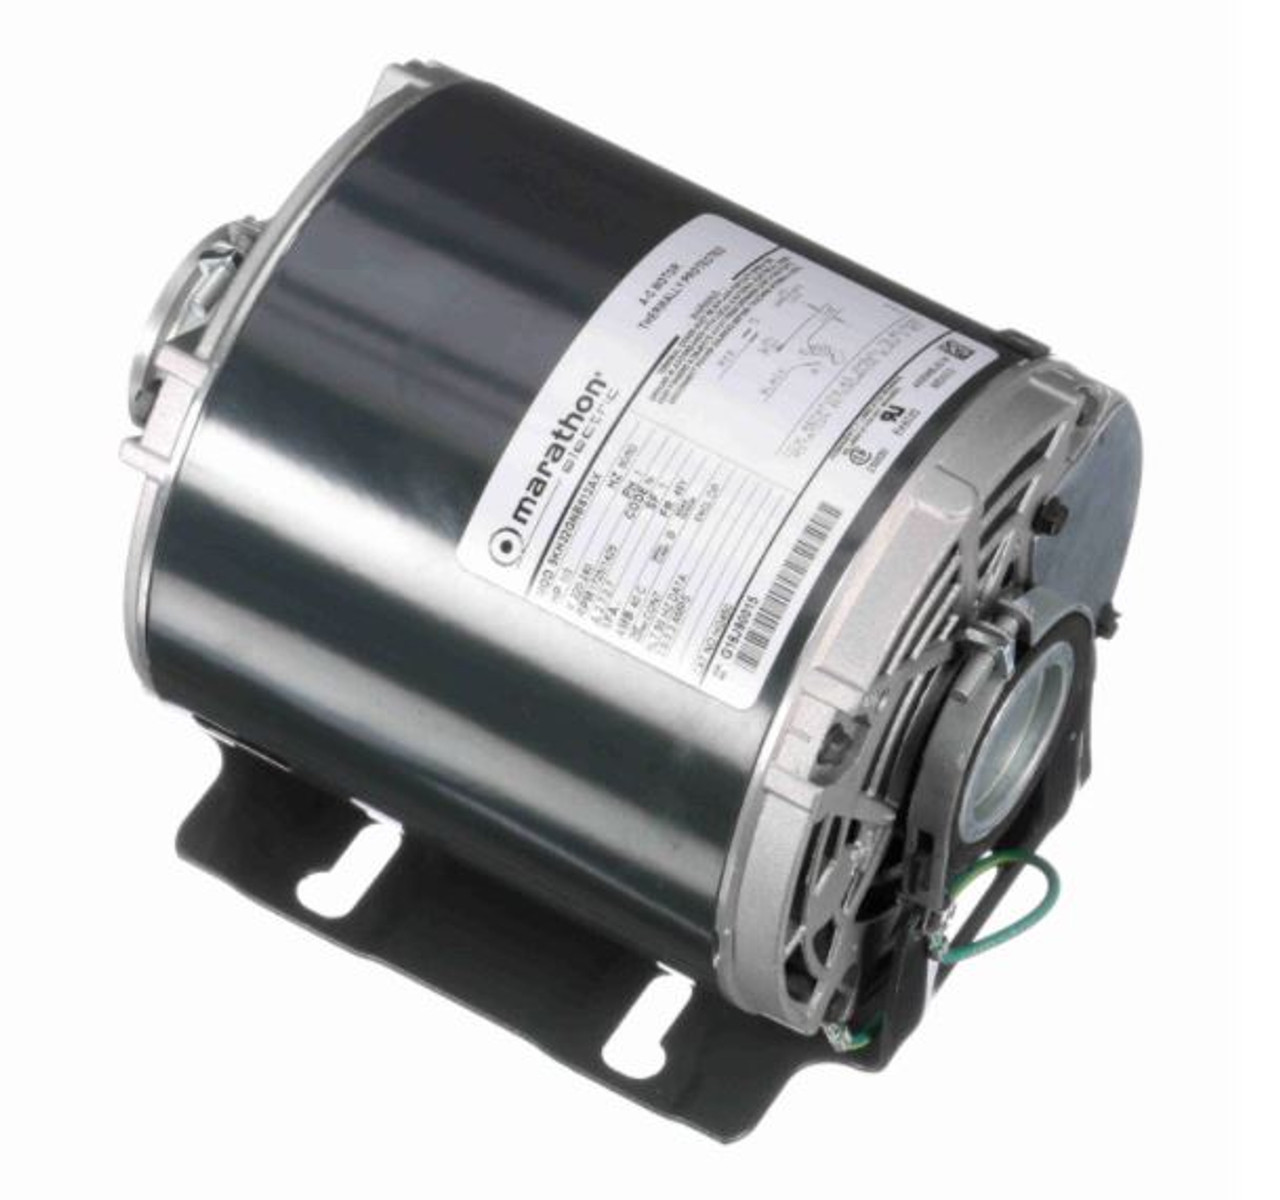 HG450 Marathon 1/3 HP Carbonator Pump Motor, 1 phase, 1800 RPM, 220-240 V